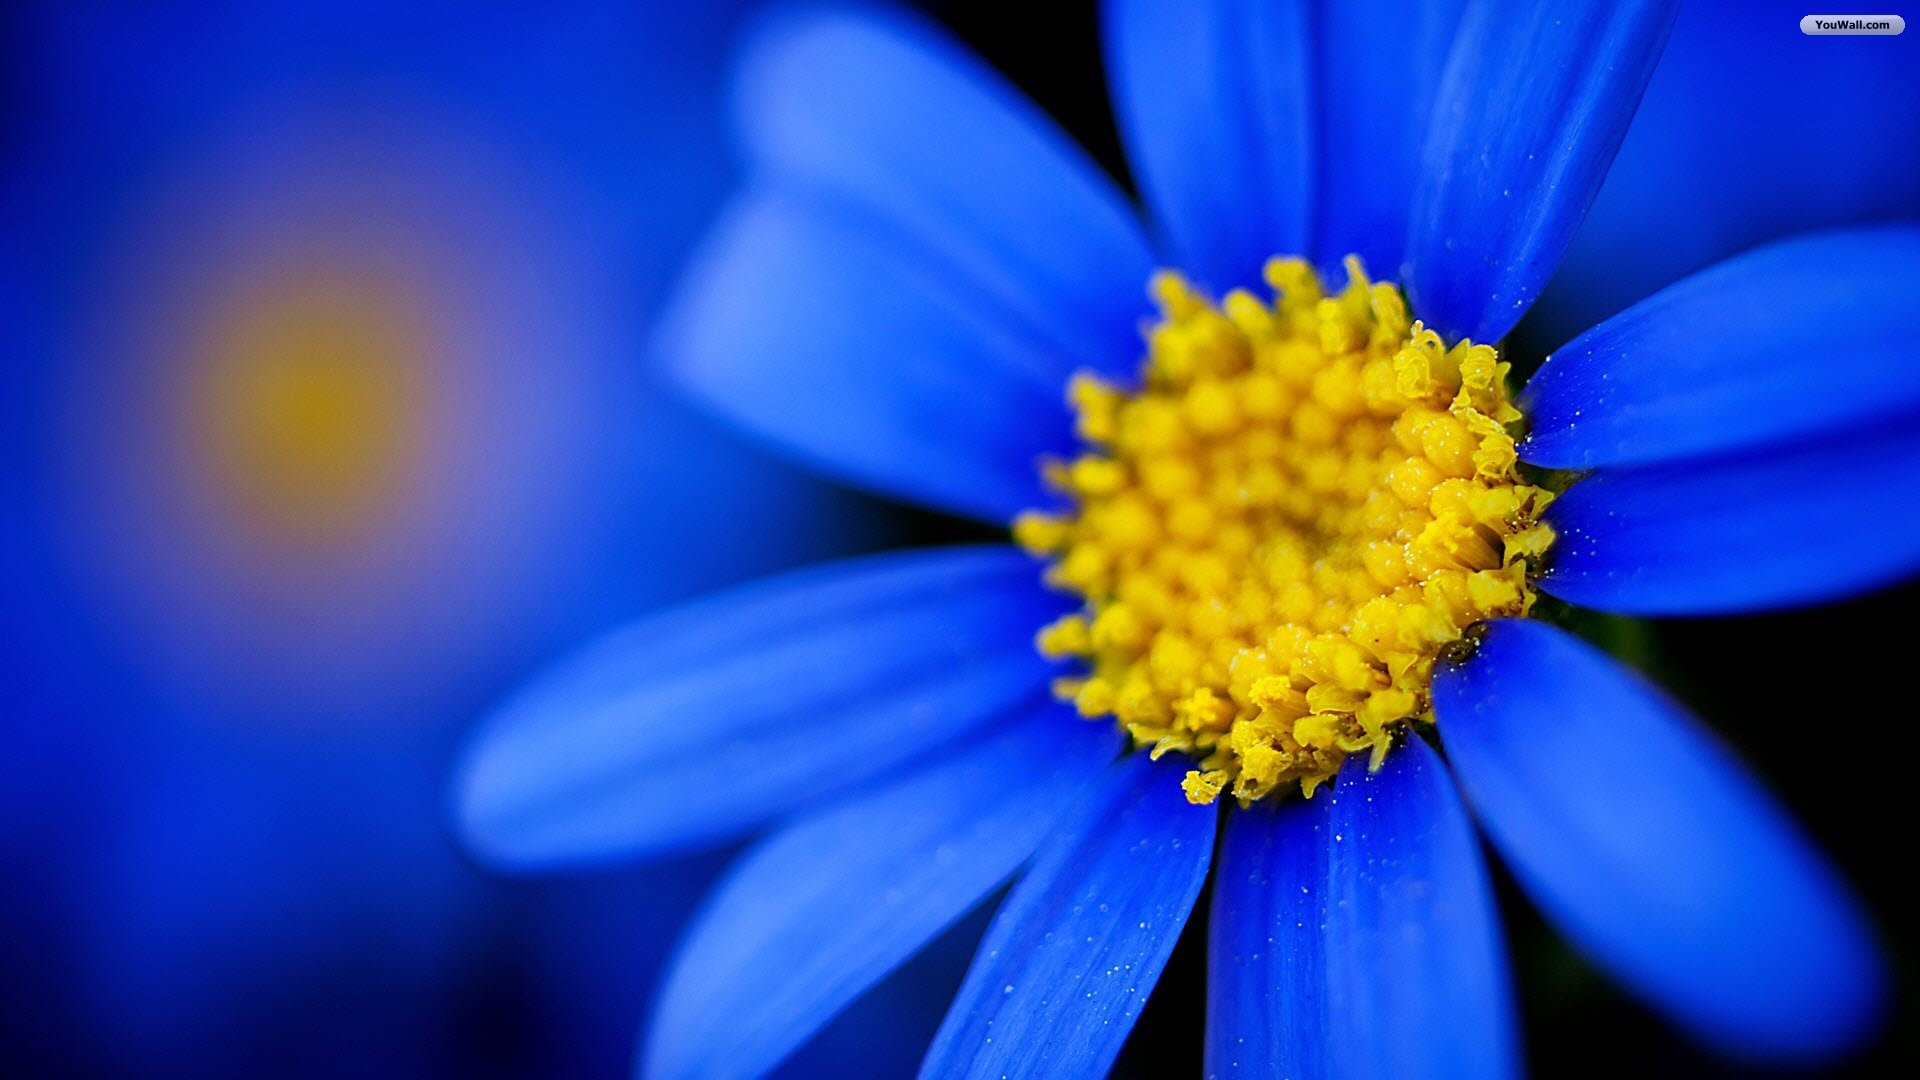 Pretty blue wallpaper 46 images 1920x1080 pretty blue flower wallpaper mightylinksfo